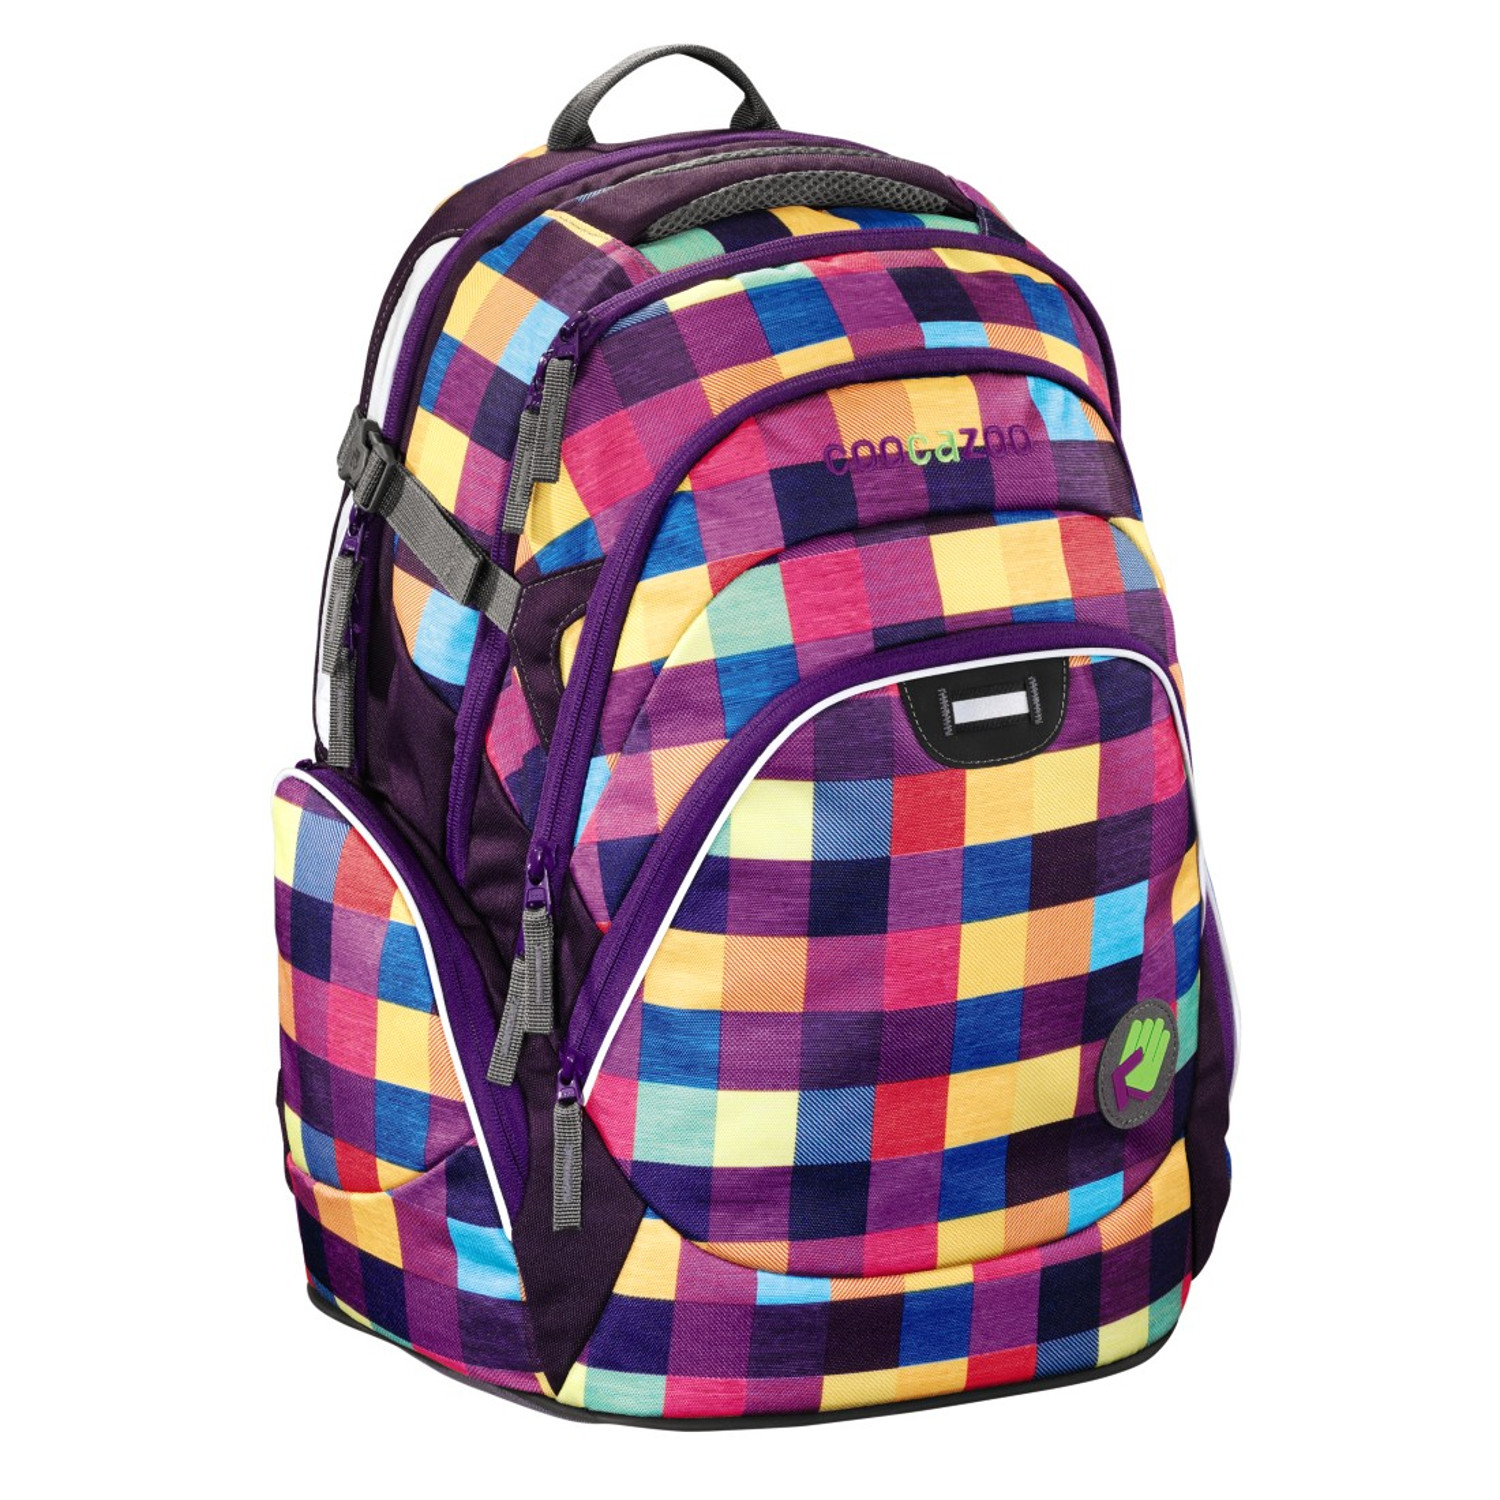 Details about Weatherproof School Bag Rucksuck Backpack Ergonomic Padded Back with Tummy Strap